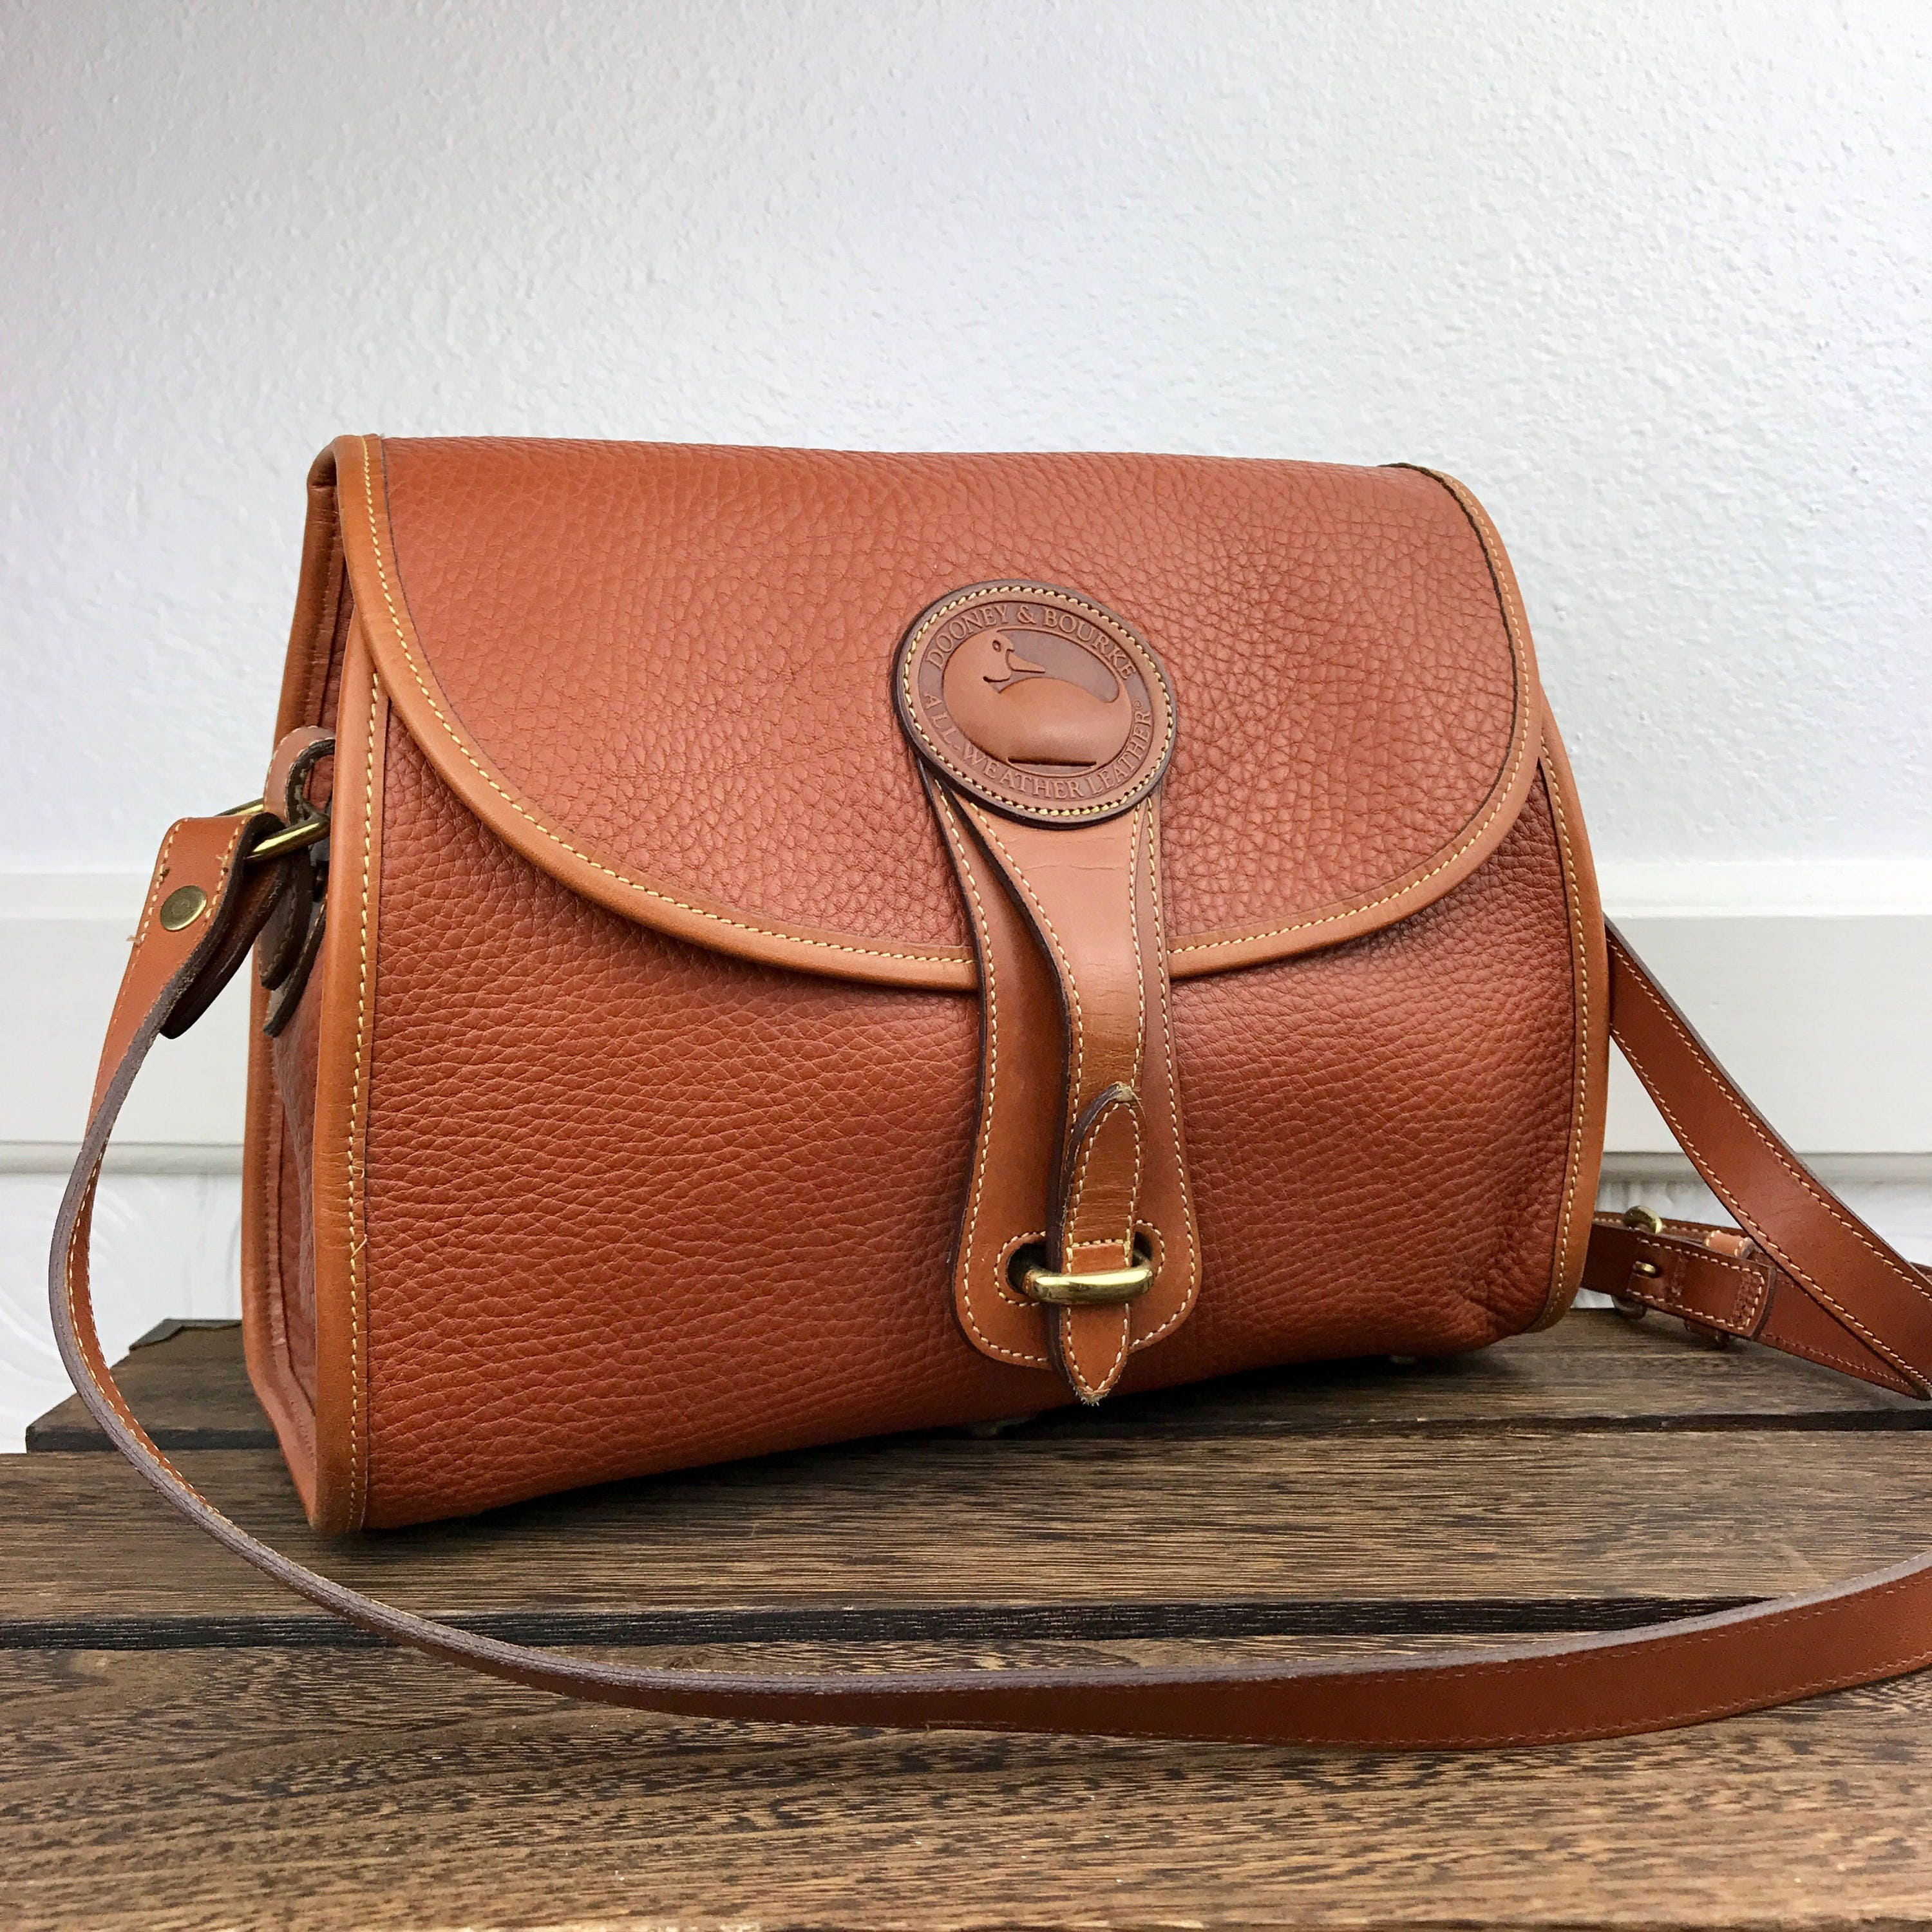 945e449613d5 Vintage Dooney   Bourke Equestrian Crossbody British Tan All Weather  Leather Shoulder Bag Made in USA